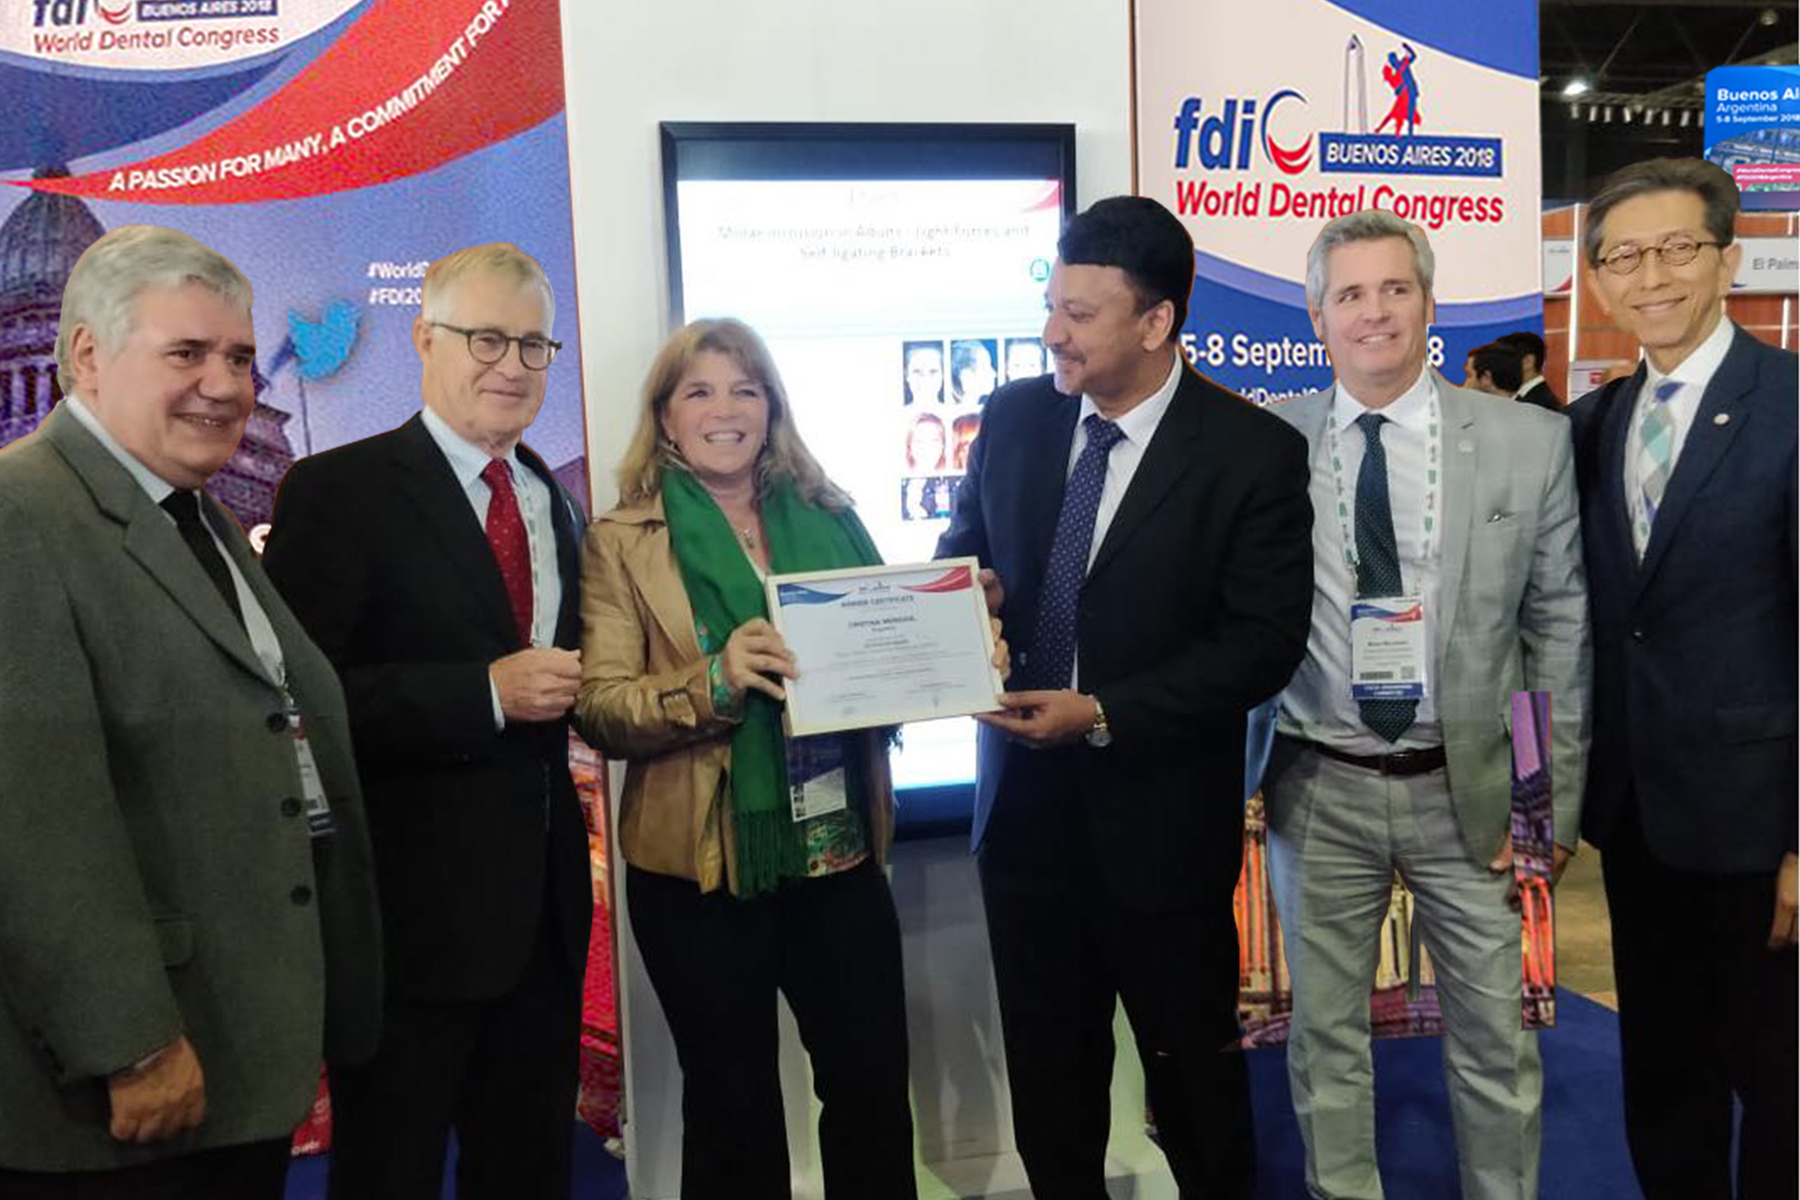 Dr SM Balaji hands a Certificate of Excellence to a winner. Also seen are Dr. Jurgen Fedderwitz, Chair, Education Committee, FDI, Dr. Guillermo Rivero, Congress President, Dr William Cheung, Member, Education Committee and Dr Brian Murdoch, Member, Scientific Committee